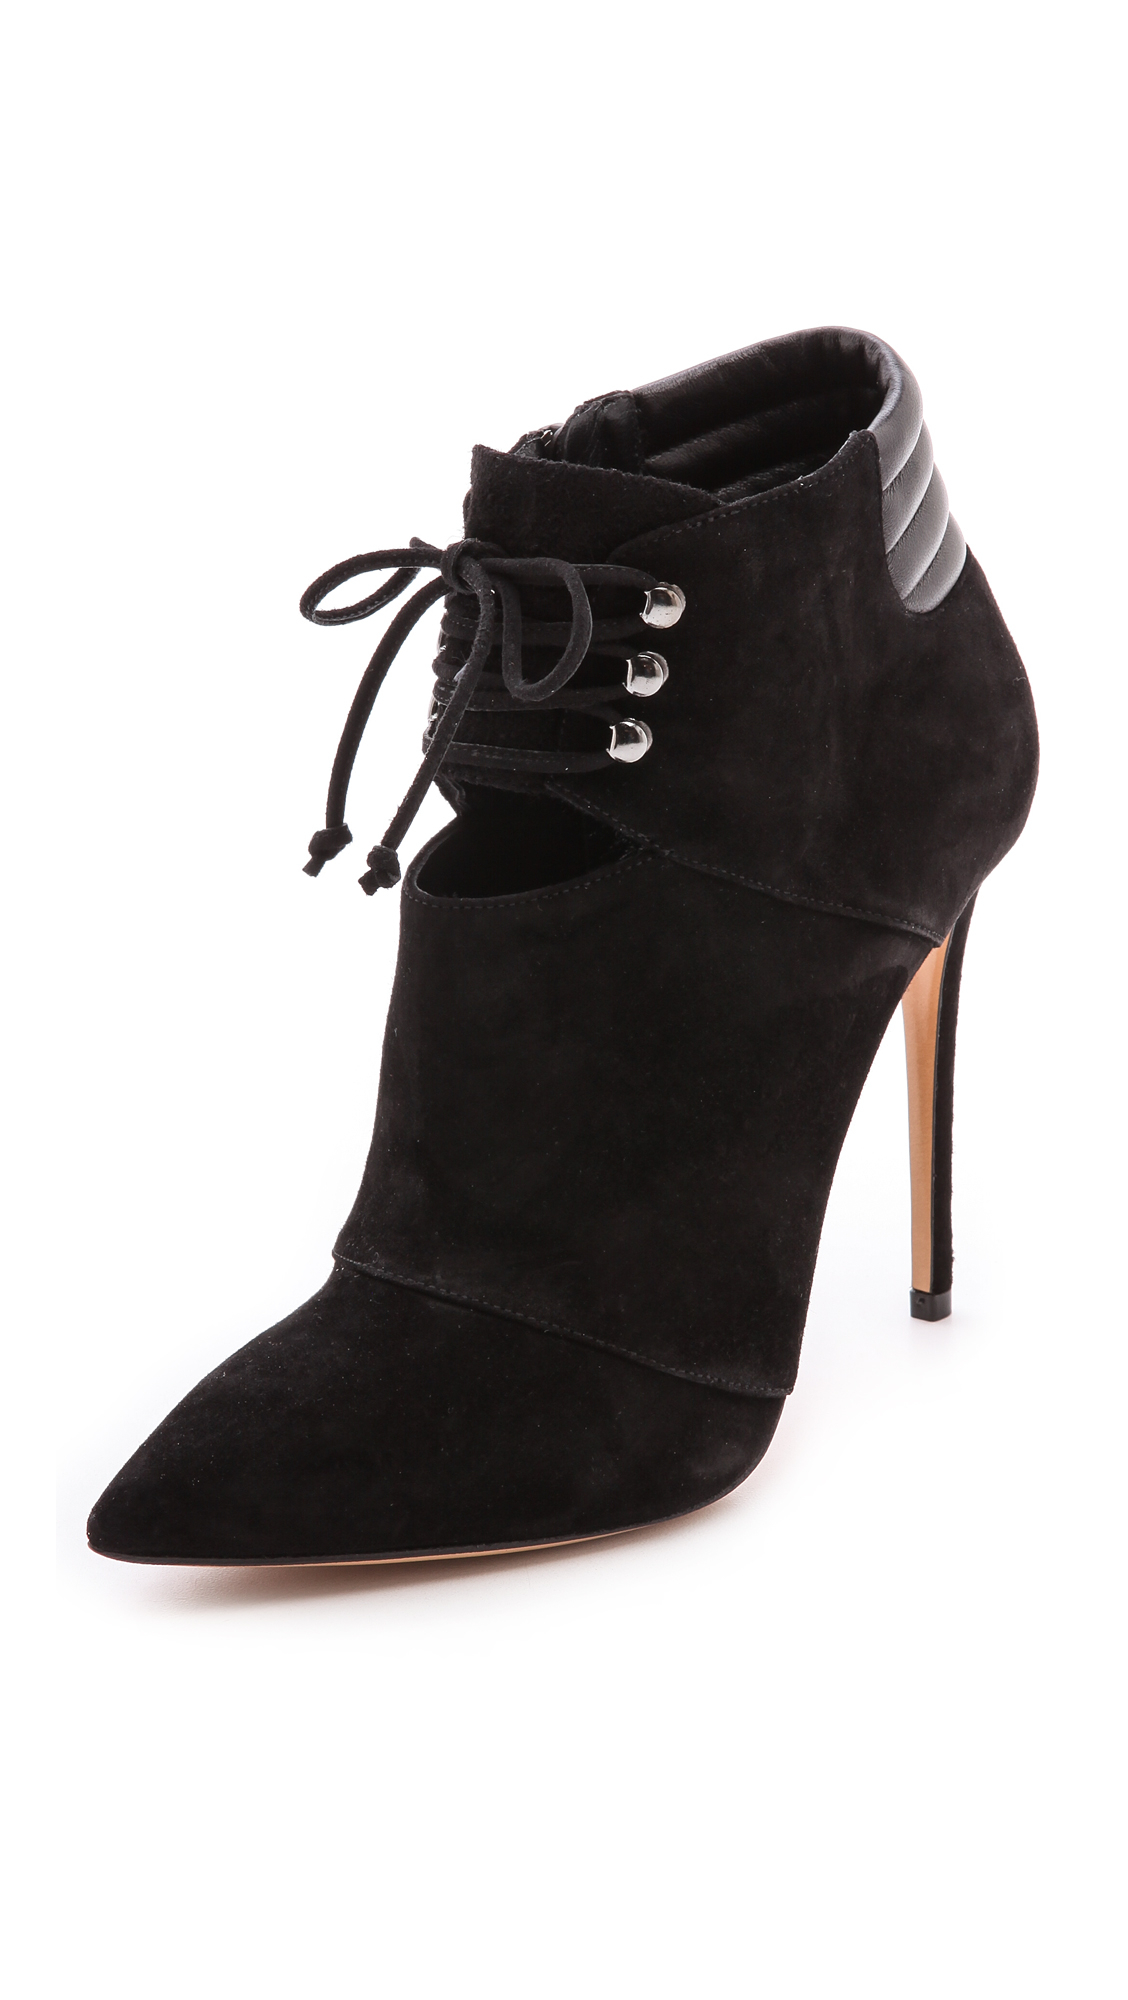 Lyst Casadei Lace Up Booties Black In Black